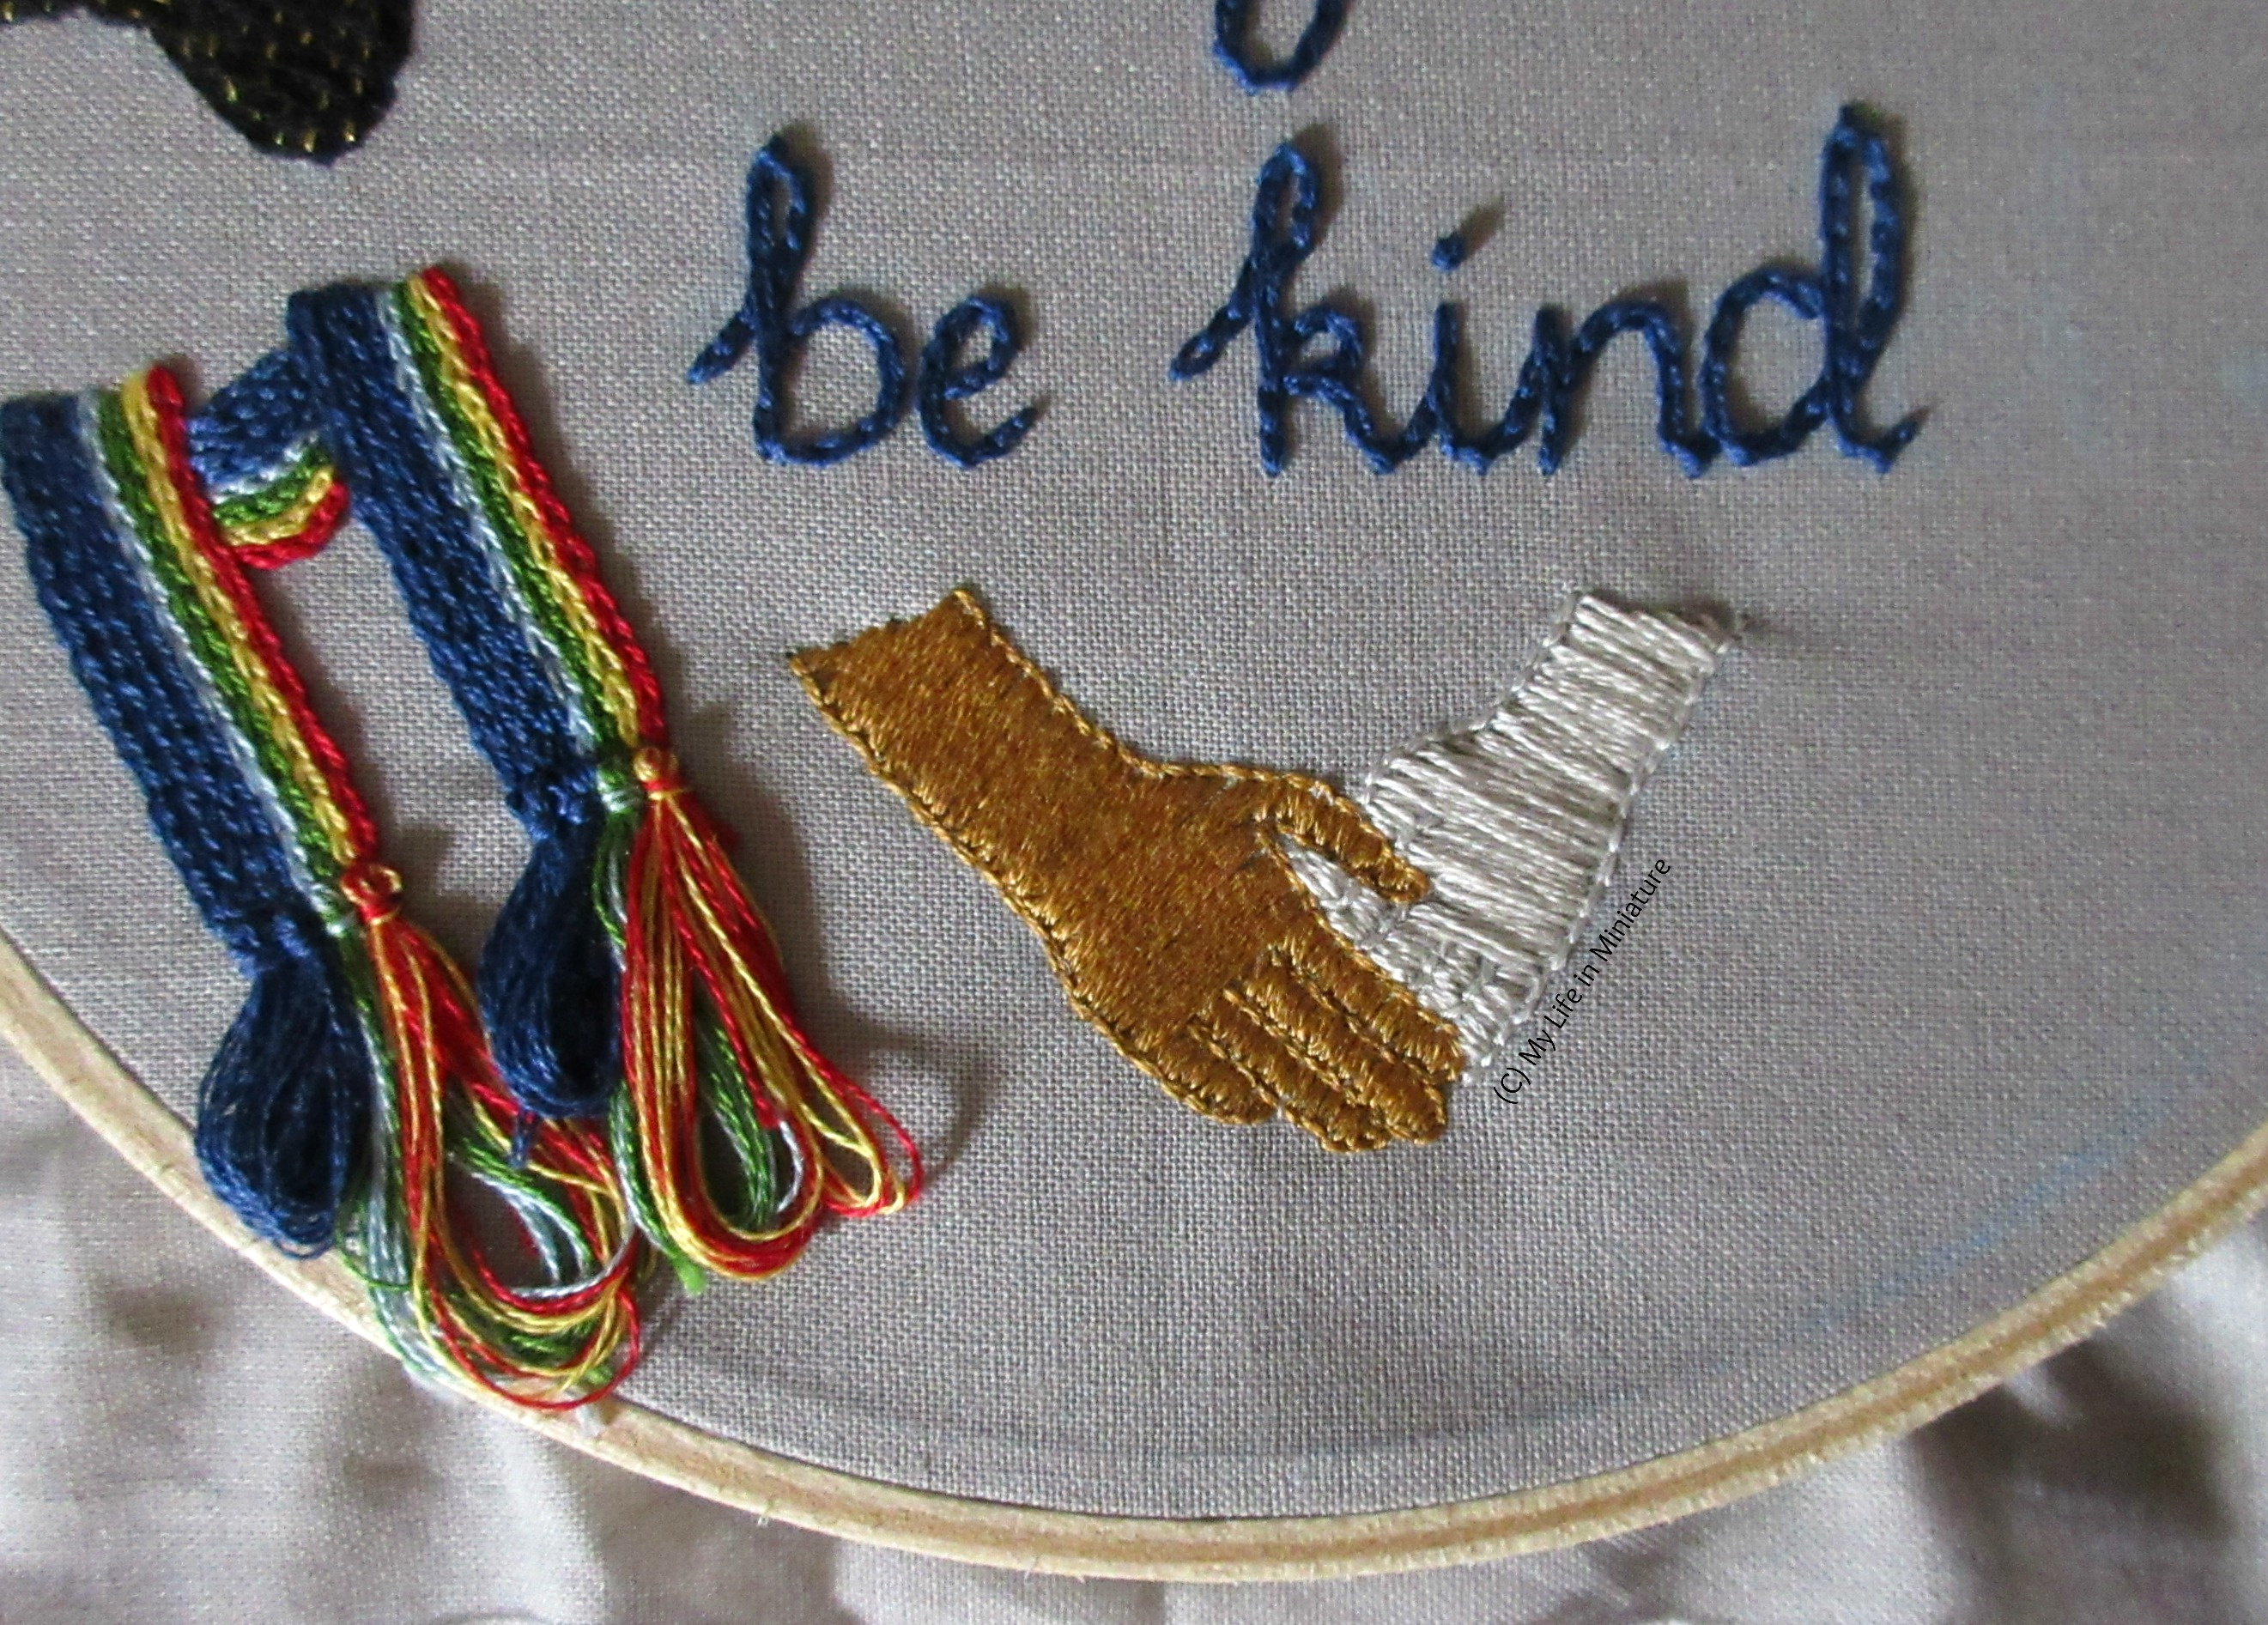 Shot from further back of the bottom of the grey hoop. The scarf tassels are visible on the left, and the two hands are now both filled in. The phrase 'be kind' is visible in dark blue above the hands.